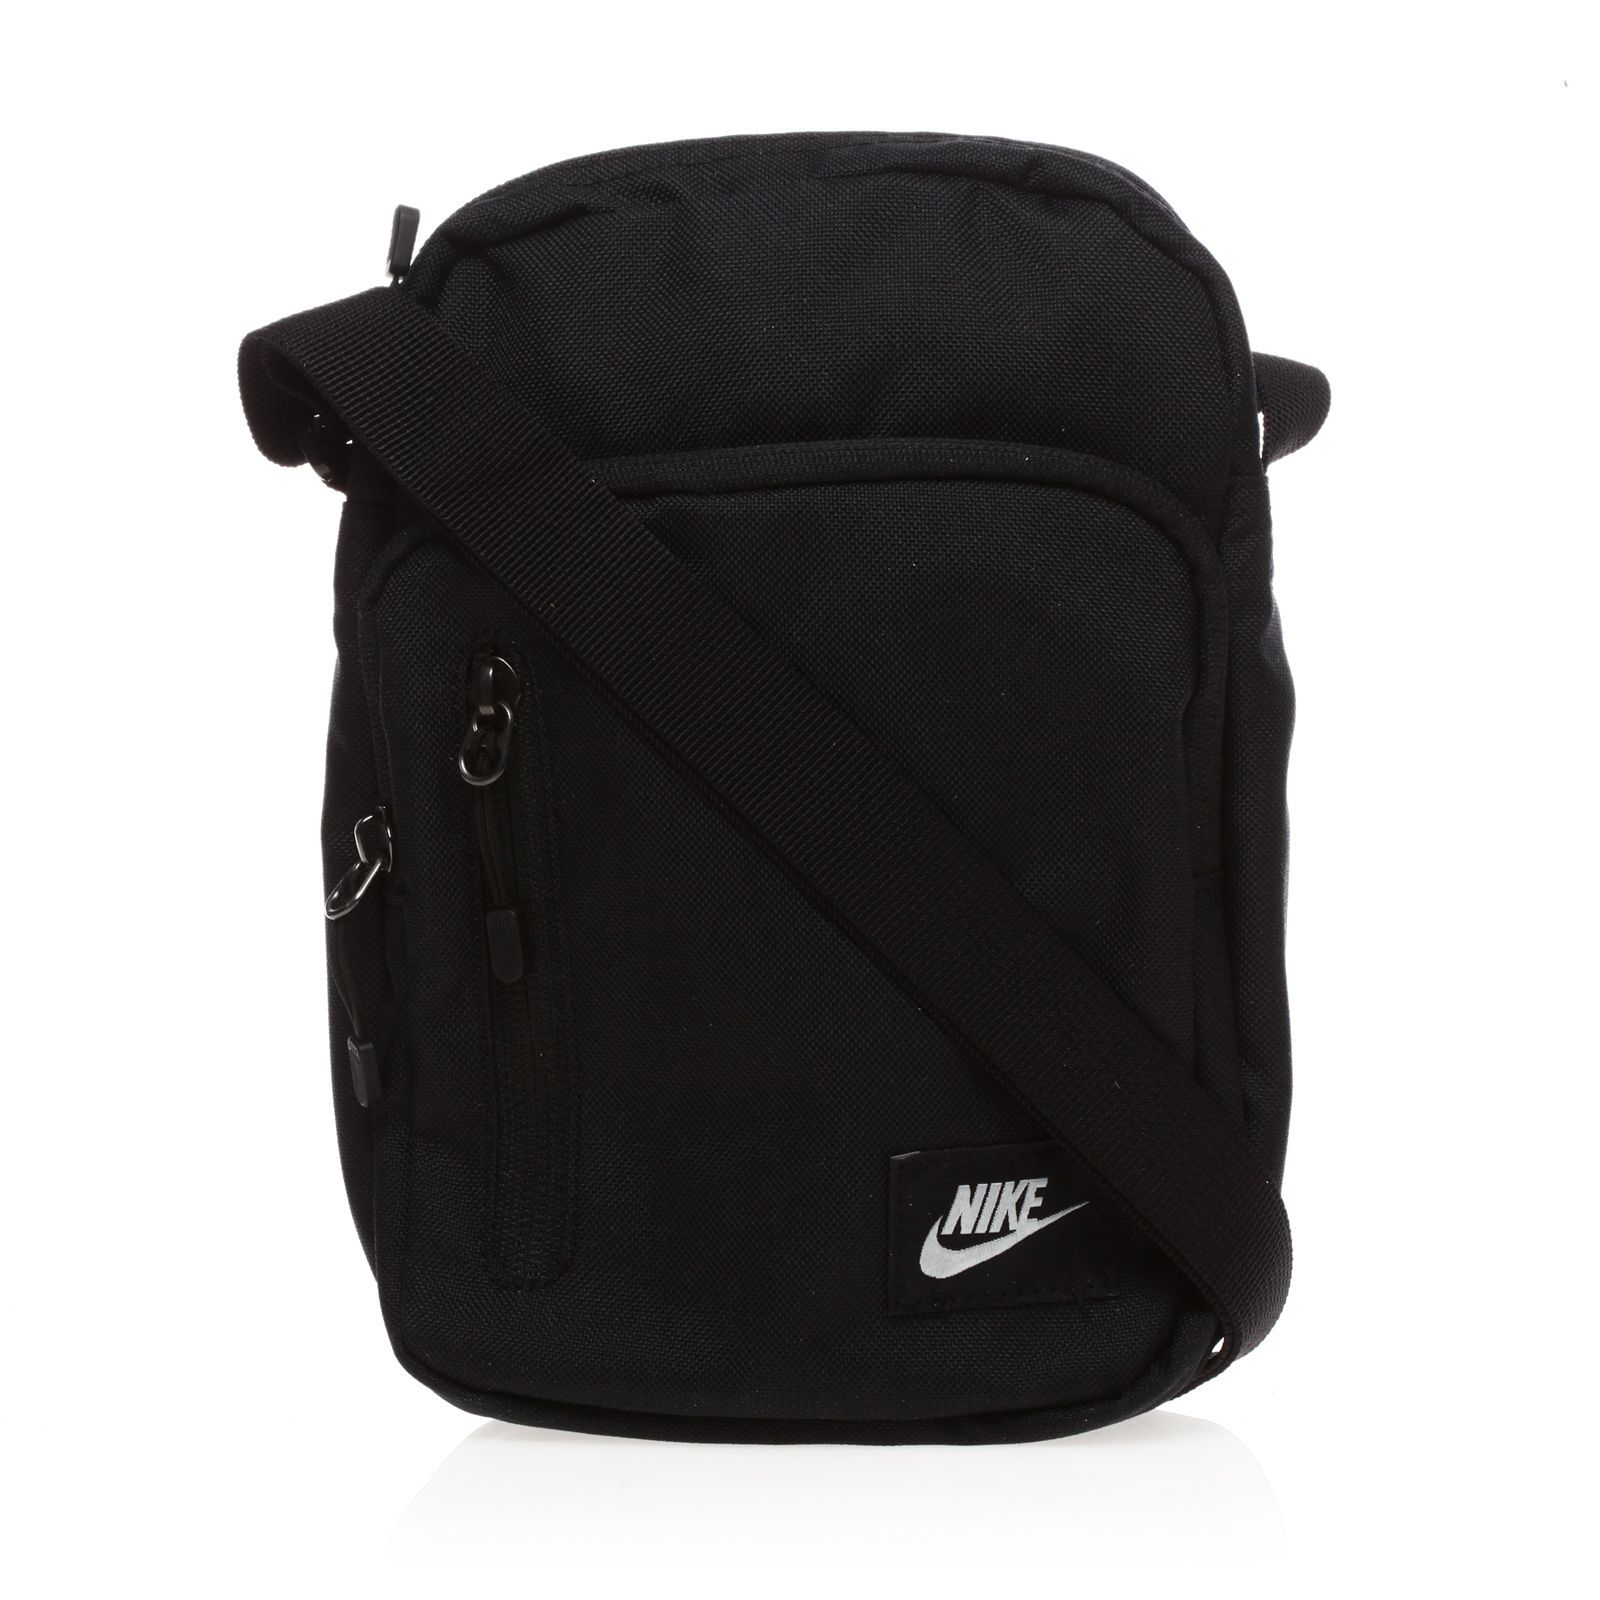 Simple nike core small items ii sacoche noire with housse de couette nike - Housse de couette basket ...